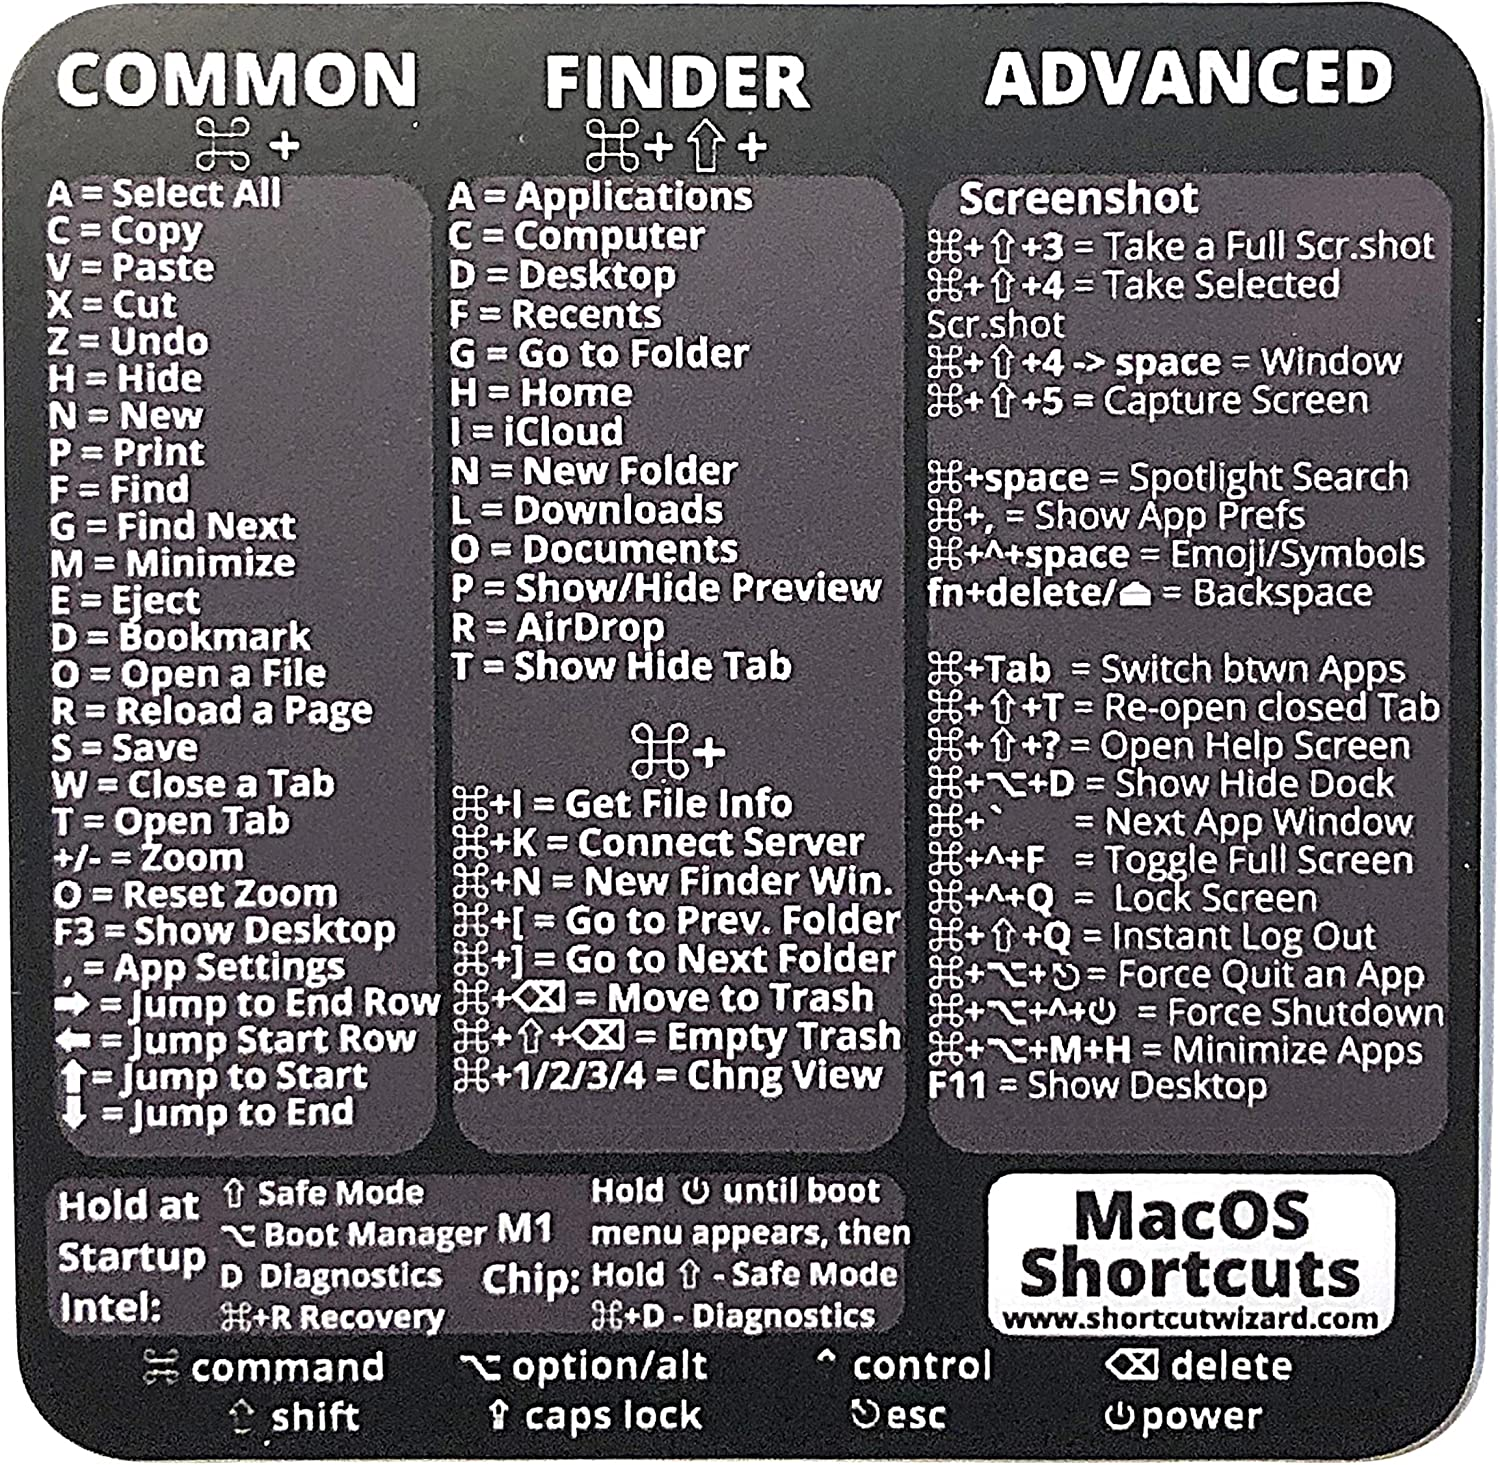 MacBook Air Accessories Keyboard Shortcut Stickers Mac OS Decal Sticker Cheat Sheet - Intel M1 Big Sur Keyboard Shortcuts for Training Reference - Temporary Adhesive Mac Accessory - Vinyl - 3